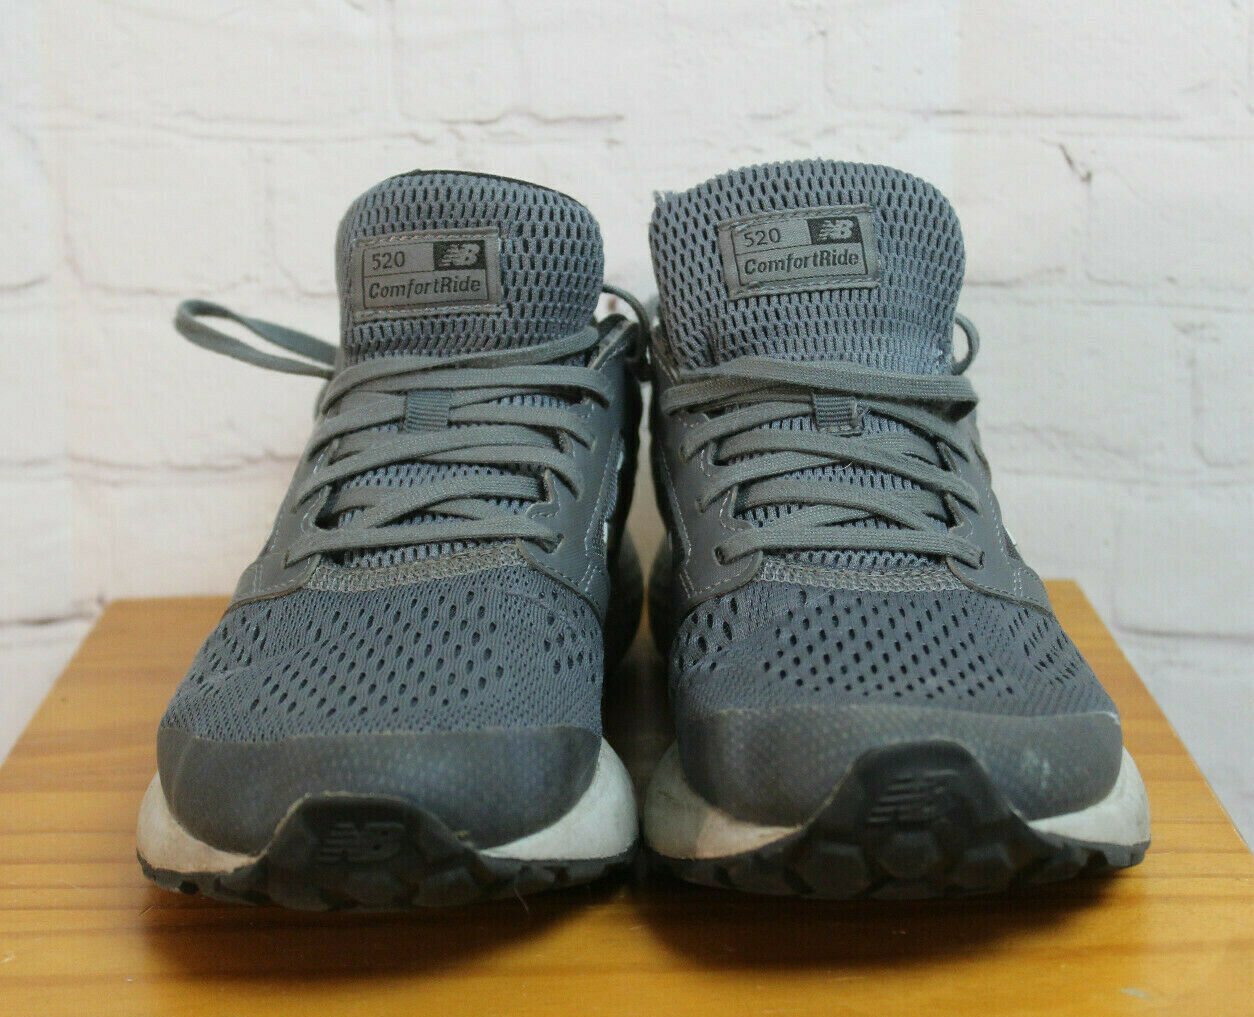 New Balance Men's 520 ComfortRide Running Athletic Tennis Shoes Size 10D